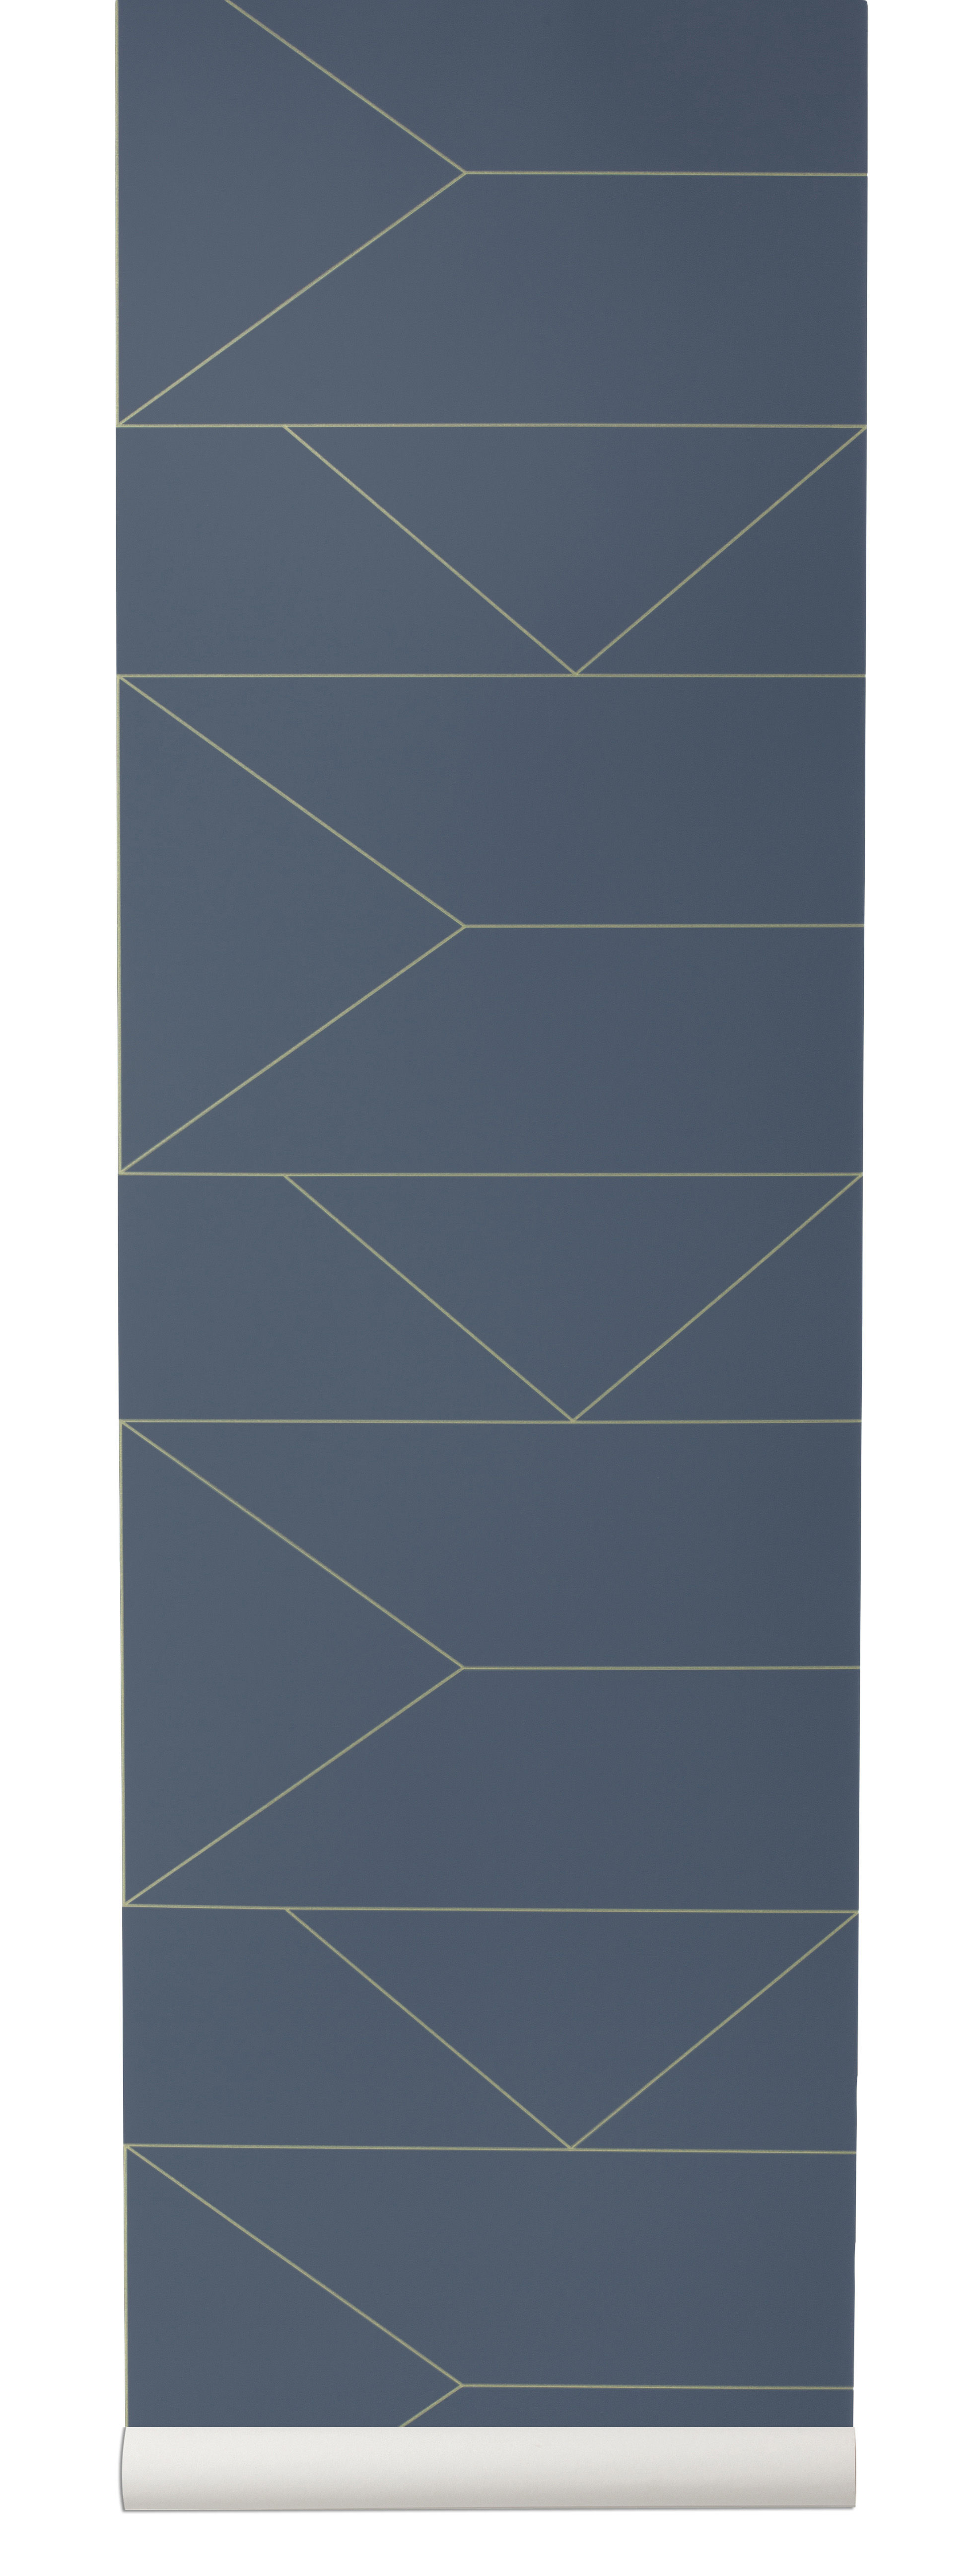 papier peint lines 1 rouleau larg 53 cm bleu or ferm living. Black Bedroom Furniture Sets. Home Design Ideas